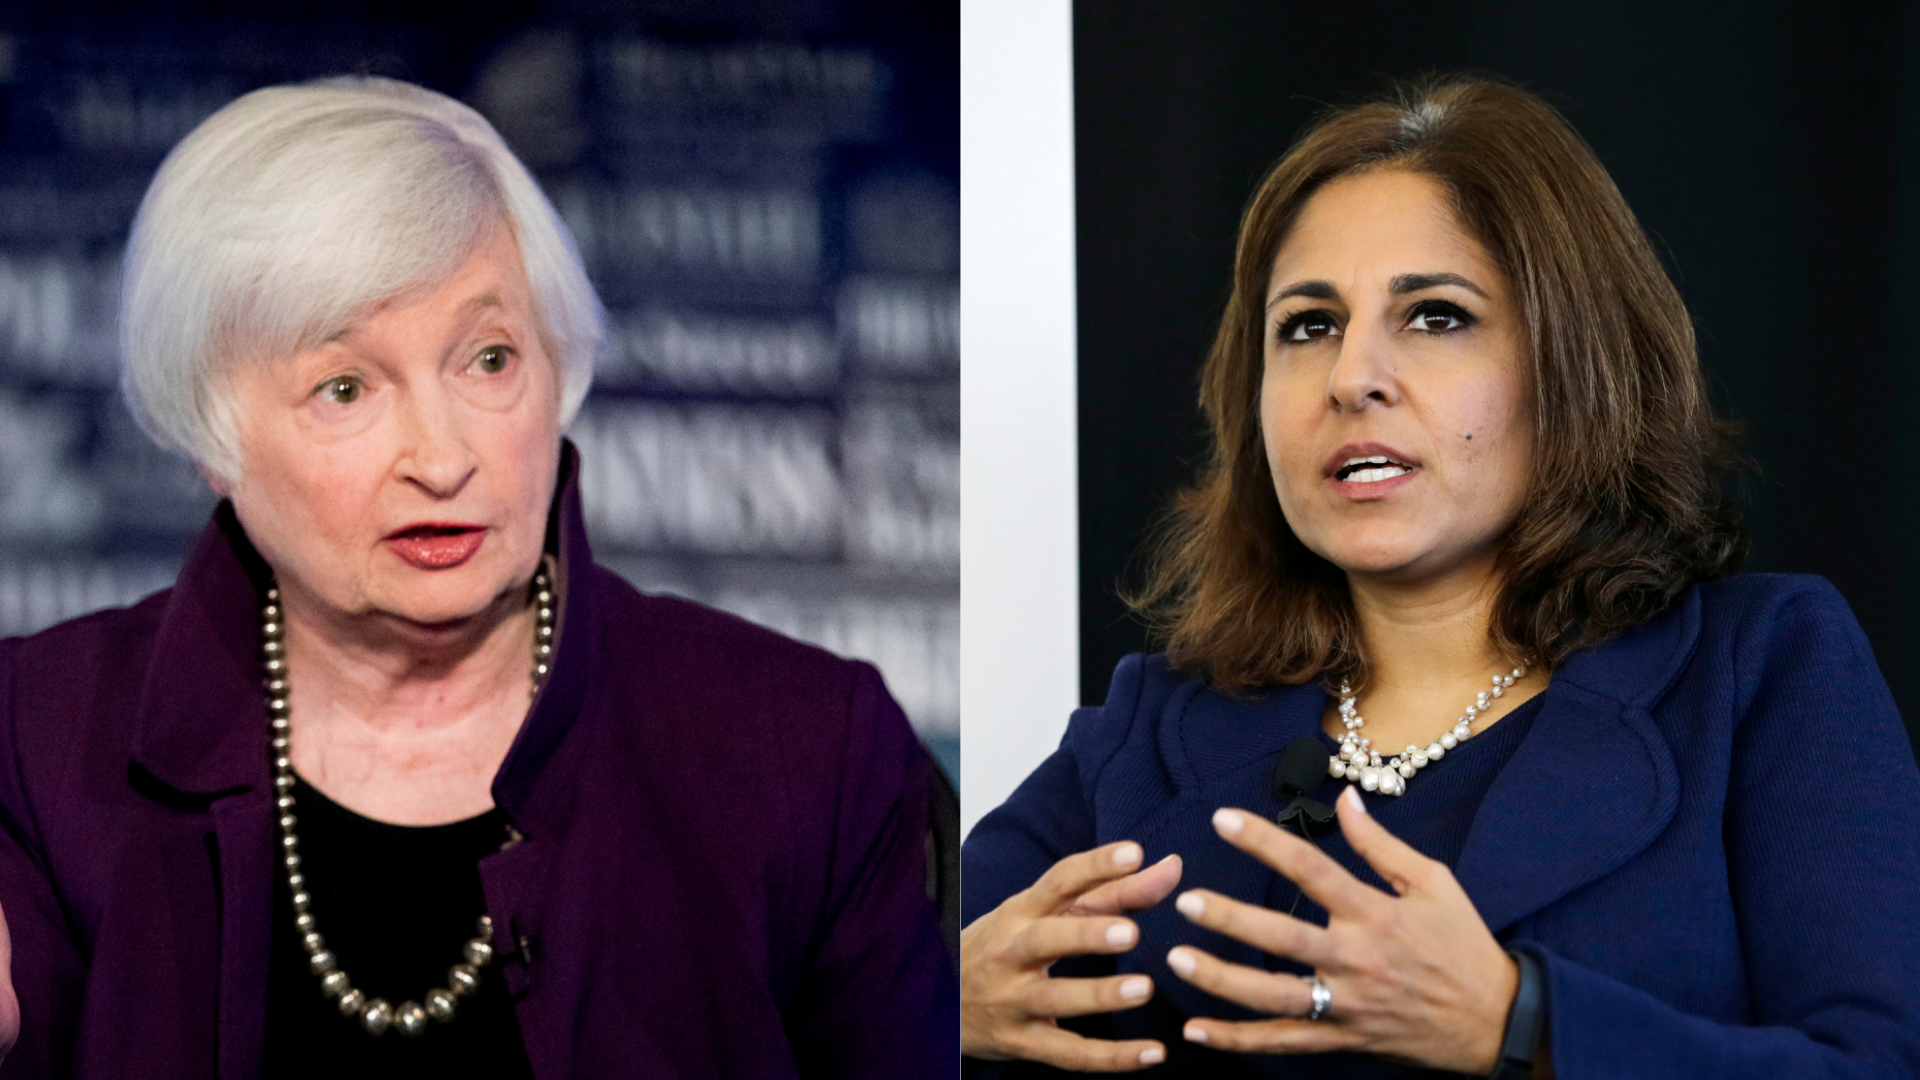 This combination photo shows Janet Yellen, left, appearing on FOX Business Network in Washington in August 2019, and Neera Tanden speaking at New Start New Jersey at NJIT in Newark in November 2014. (AP Photo/Andrew Harnik/Mel Evans)